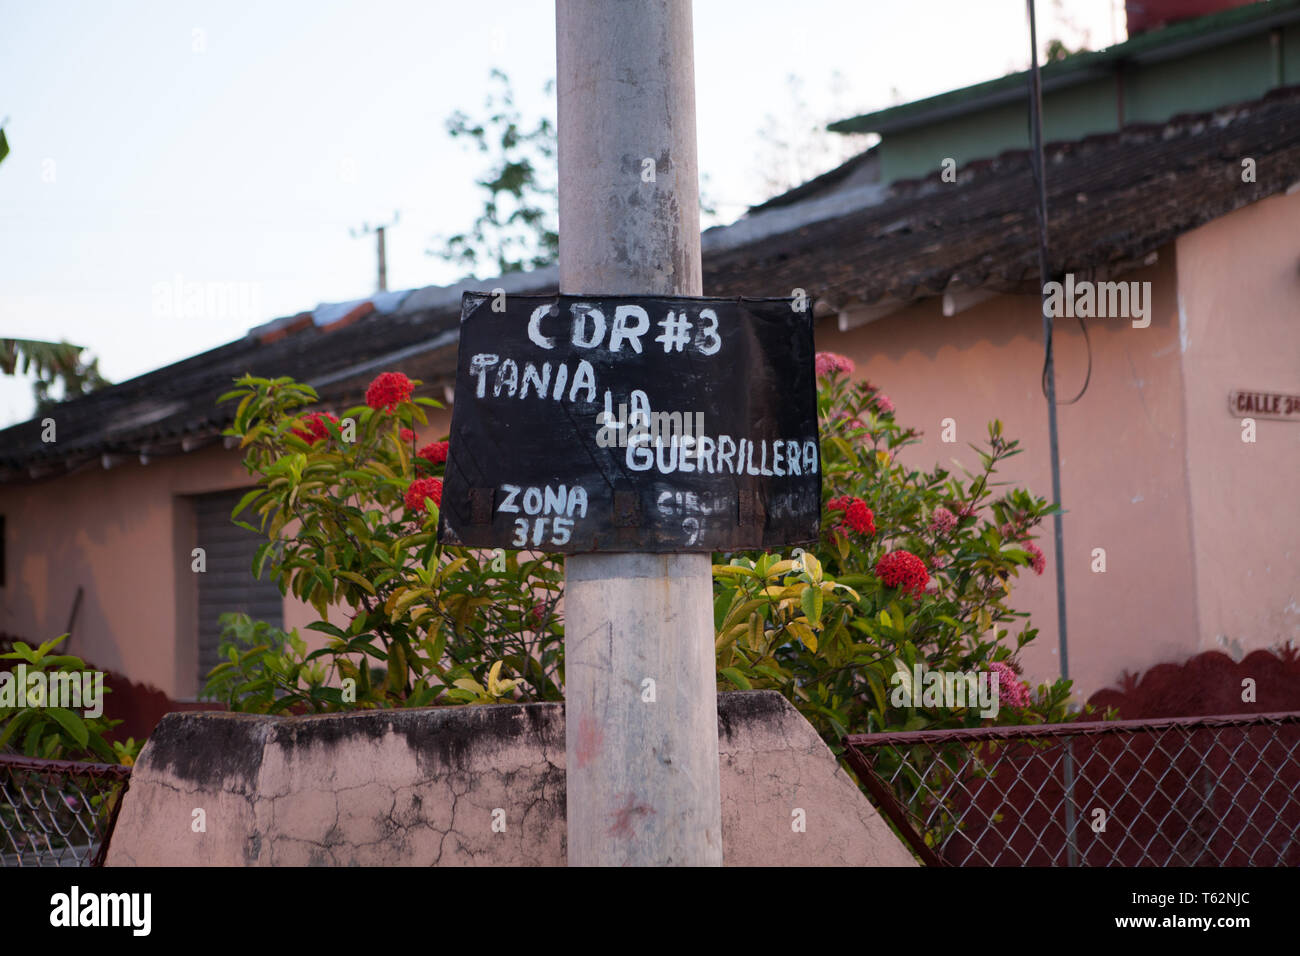 Committees for the Defense of the Revolution, or CDR, are a network of neighborhood committees across Cuba. The organizations, described as the 'eyes. - Stock Image